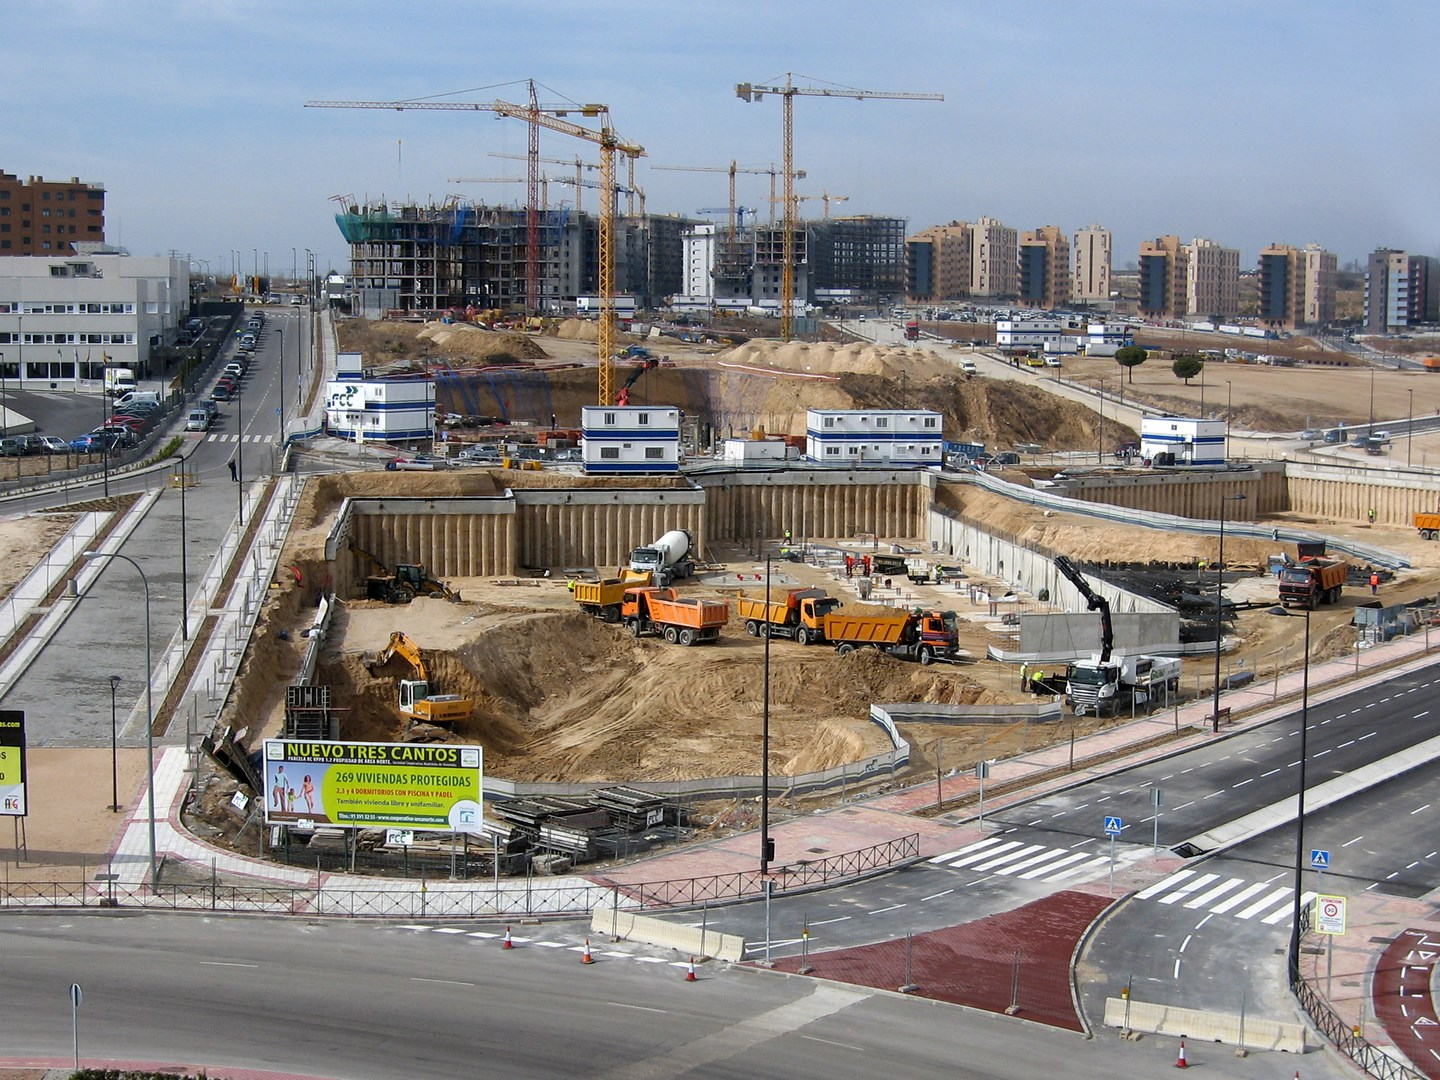 THE NUEVO TRES CANTOS WORKS WITH 1,000 DWELLINGS IN THE BACKGROUND